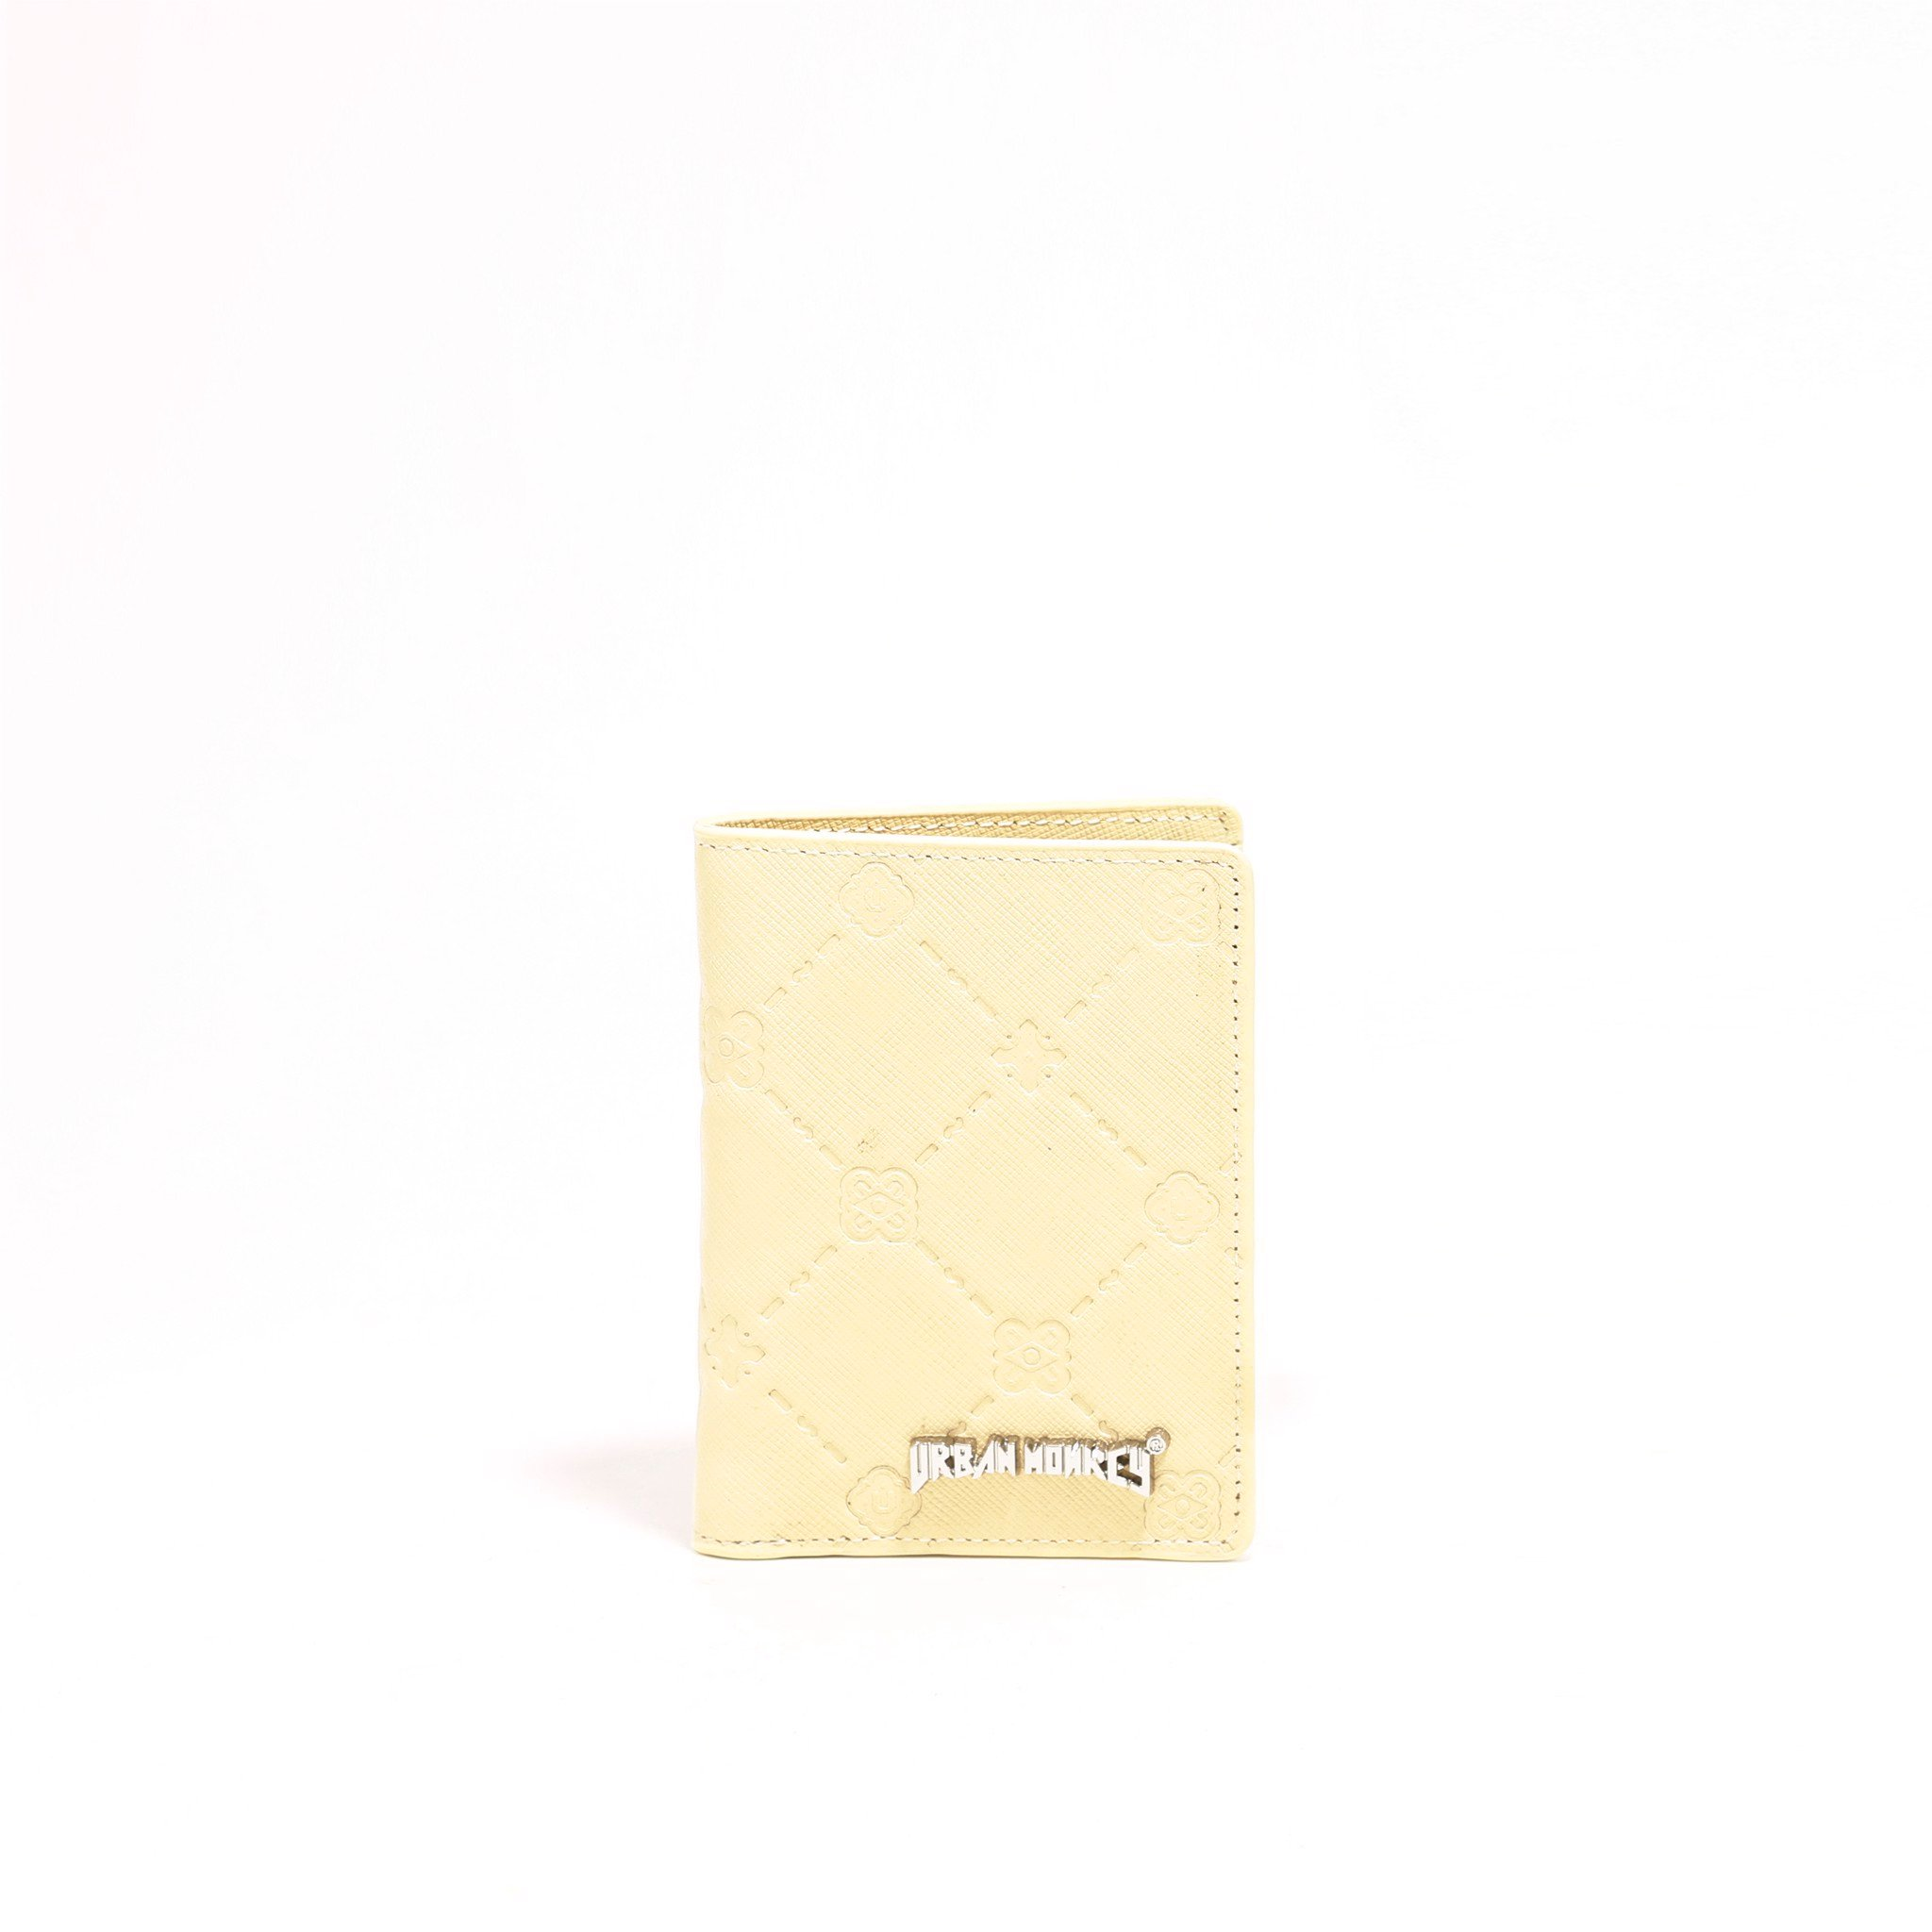 LOLIPOP SHORT WALLET TAN